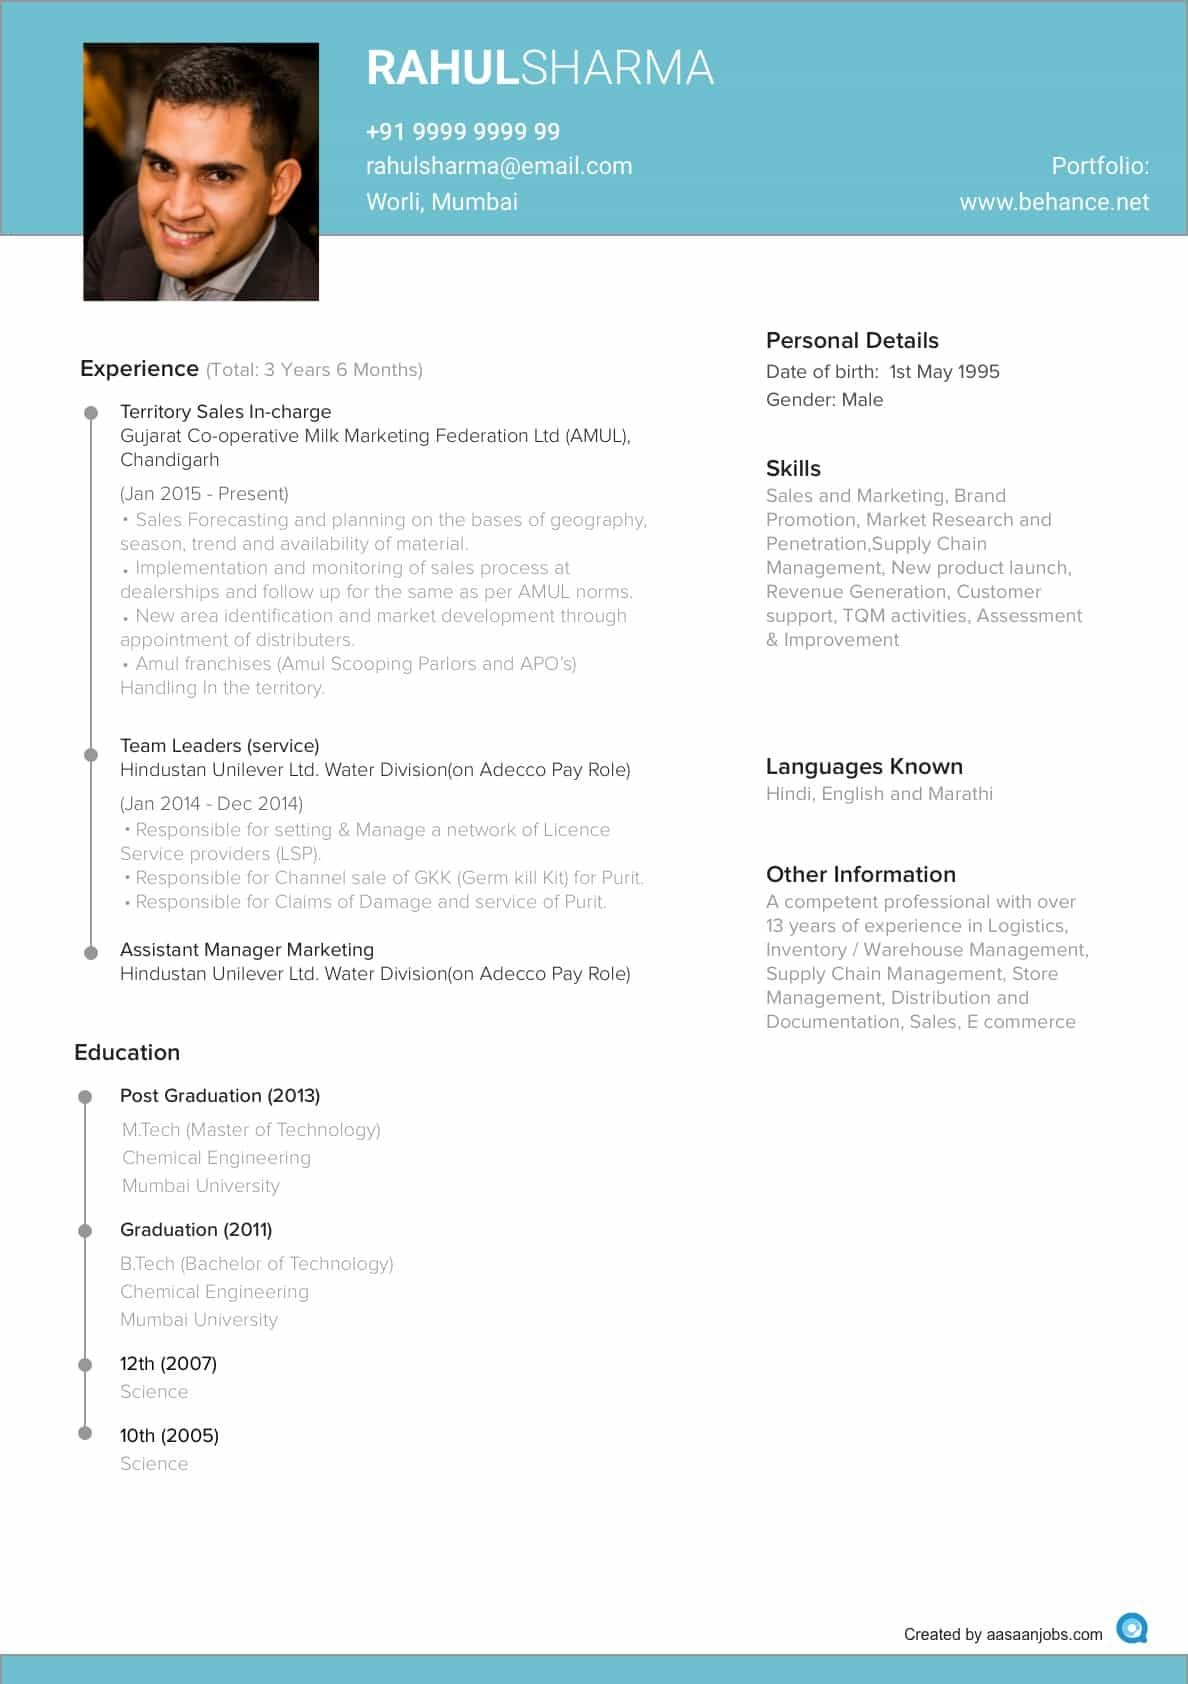 professionally drafted resume creates a good impression in the interview use the resume format to build your own professional cv - Resume Format New